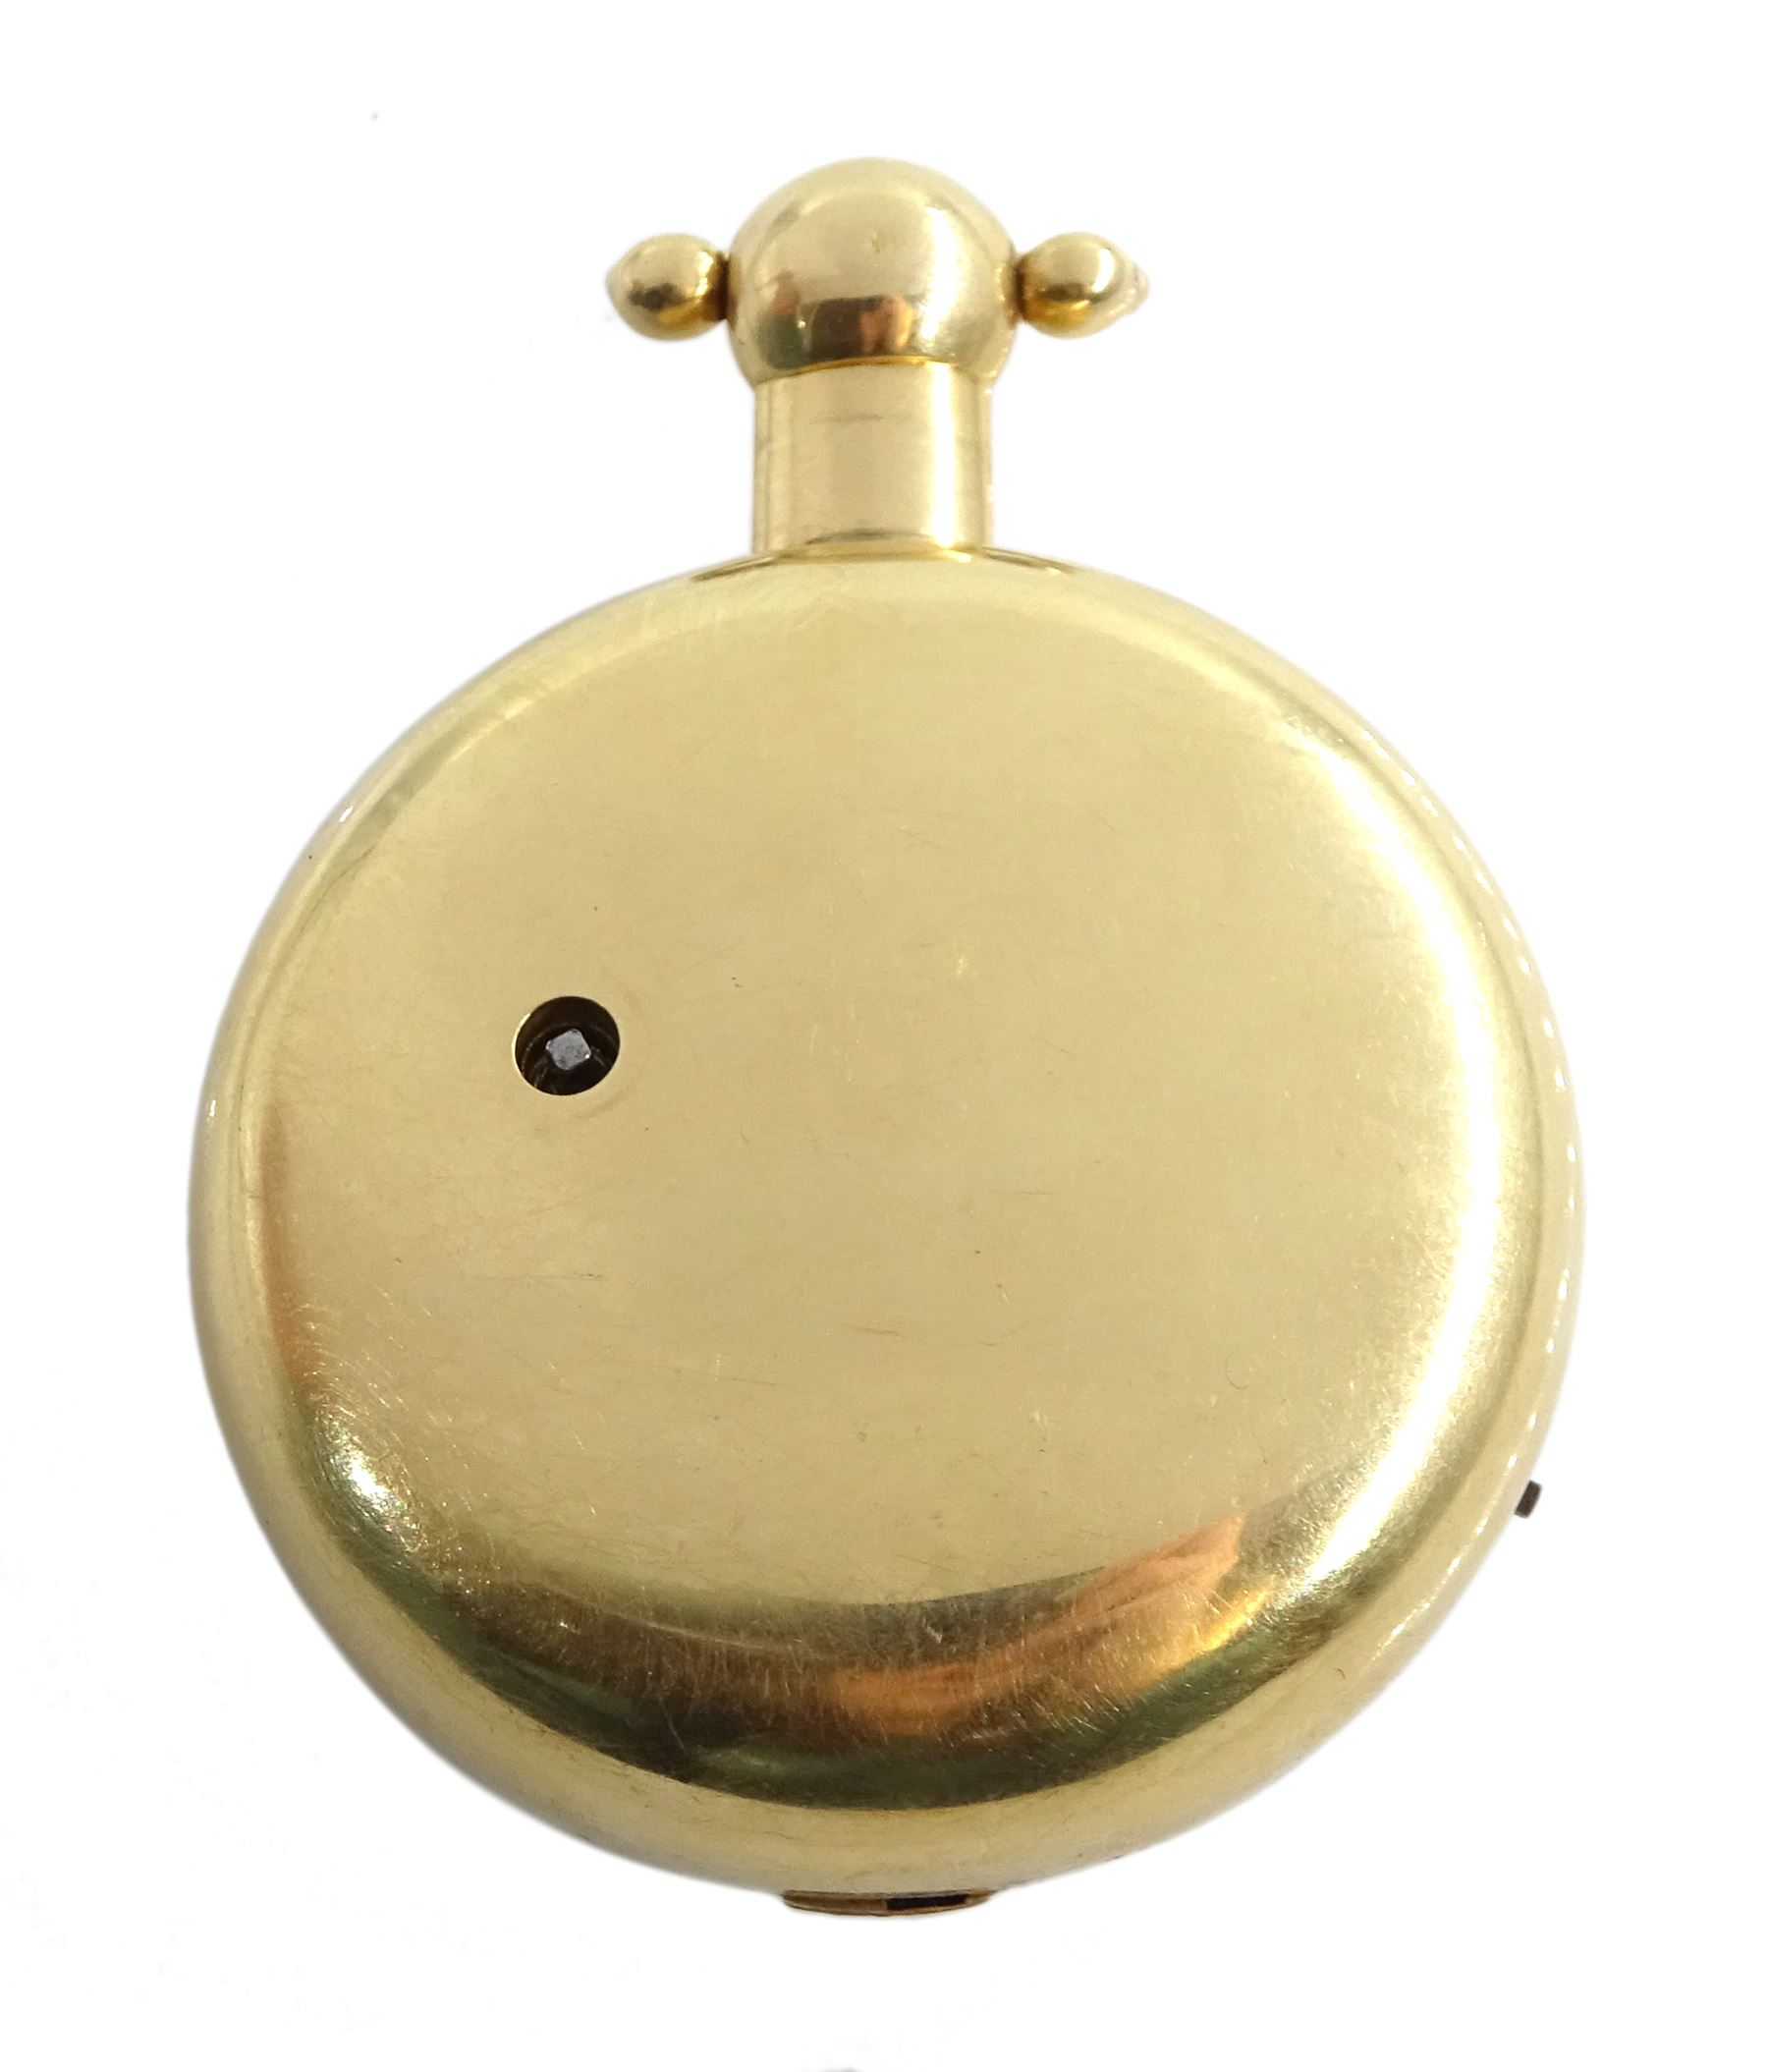 George III 18ct gold pair cased English lever fusee pocket watch by John Bolton - Image 9 of 9